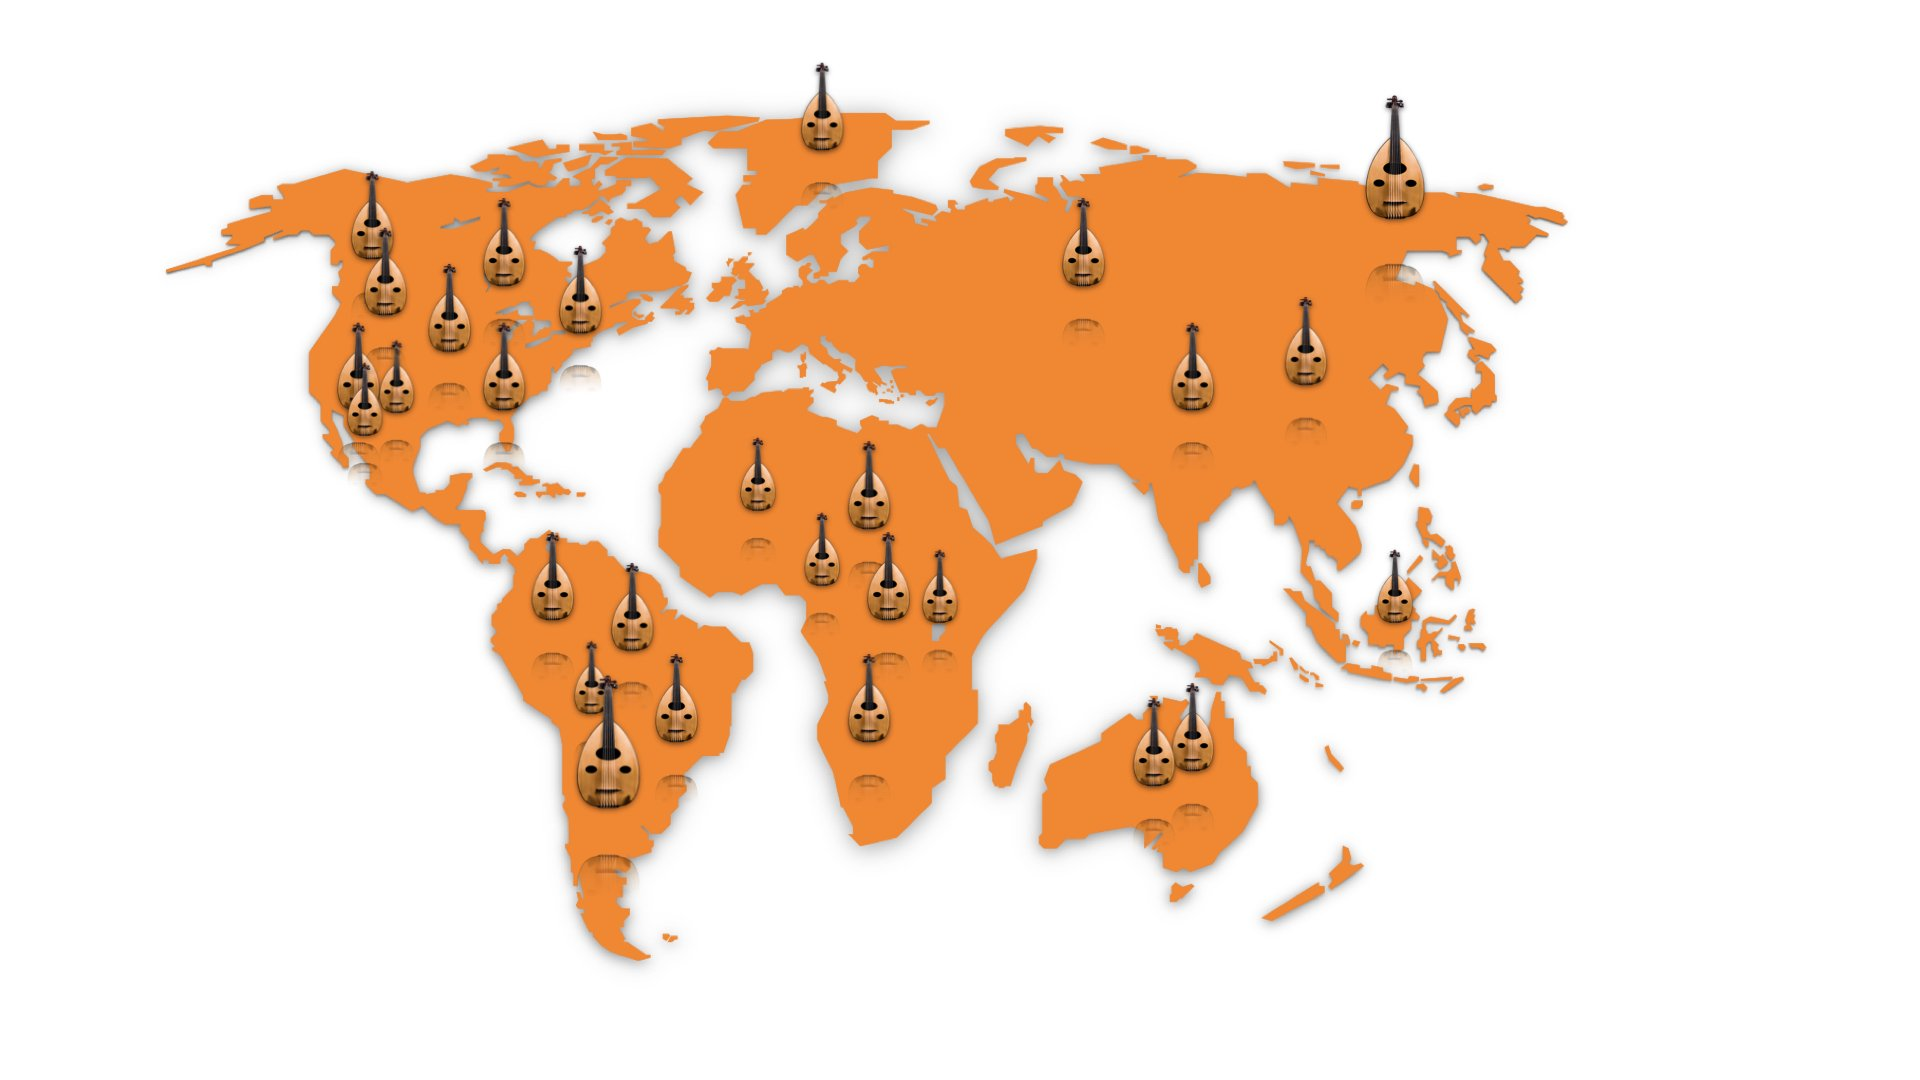 School of Oud Online - students from over 27 countries around the world